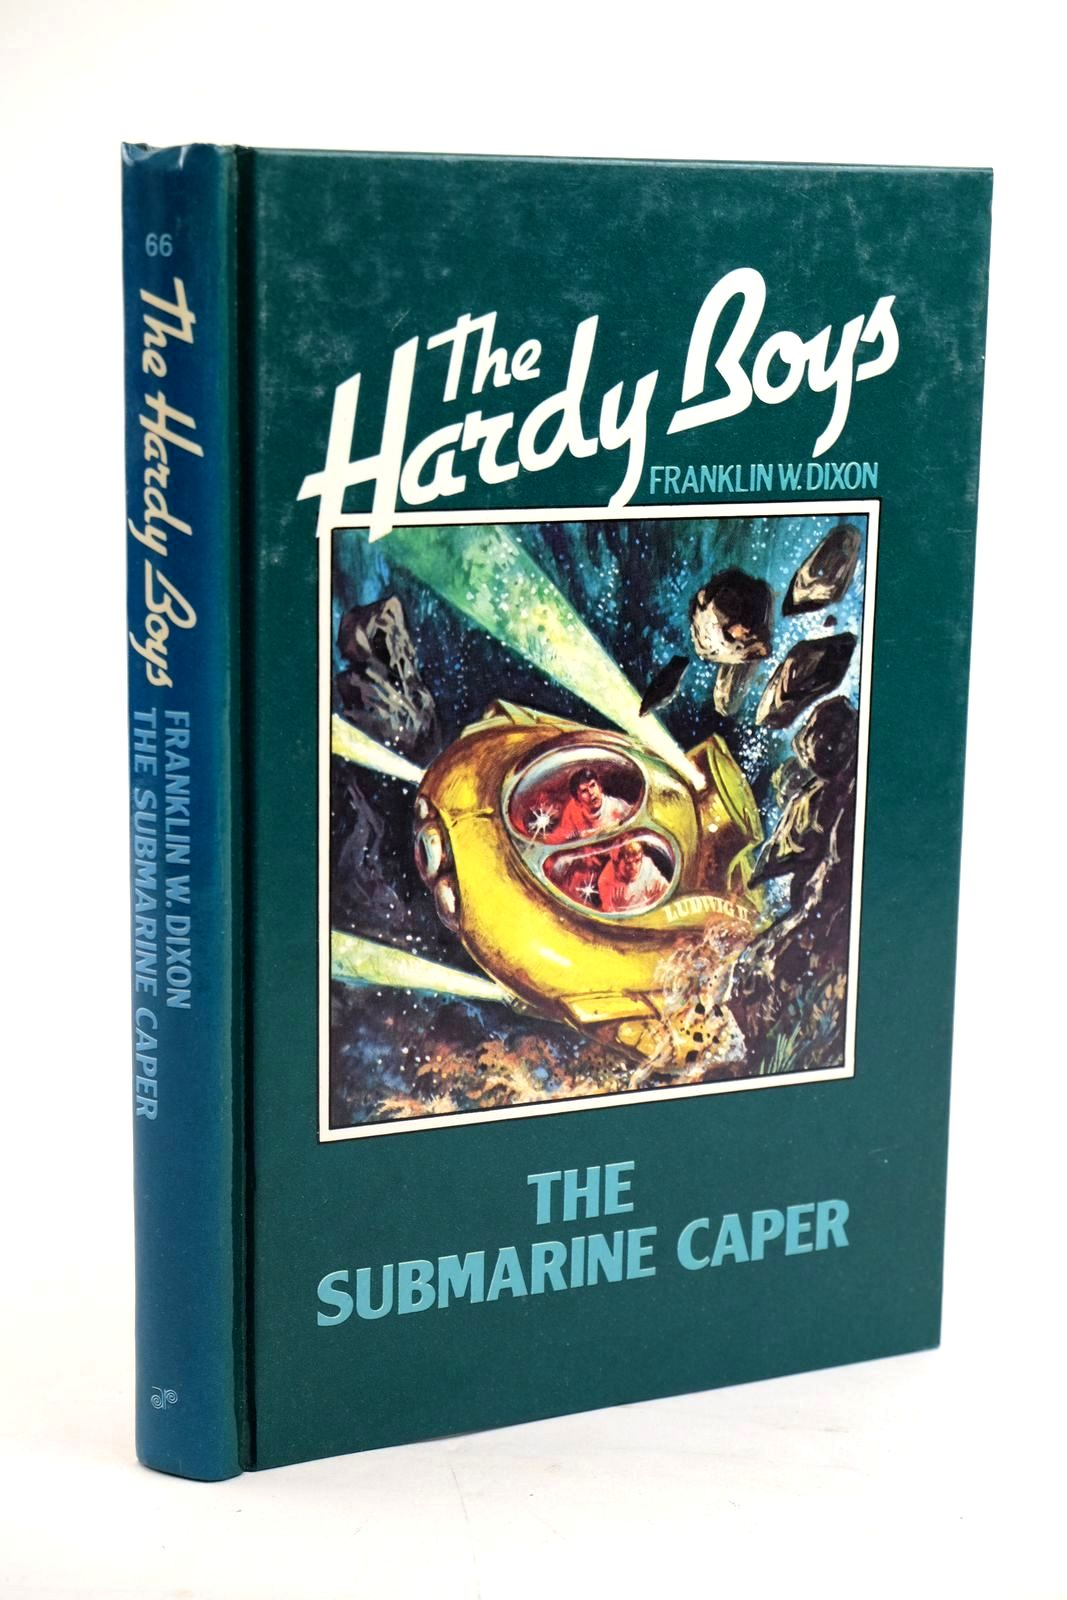 Photo of THE SUBMARINE CAPER written by Dixon, Franklin W. illustrated by Morrill, Leslie published by Angus & Robertson Publishers (STOCK CODE: 1319555)  for sale by Stella & Rose's Books